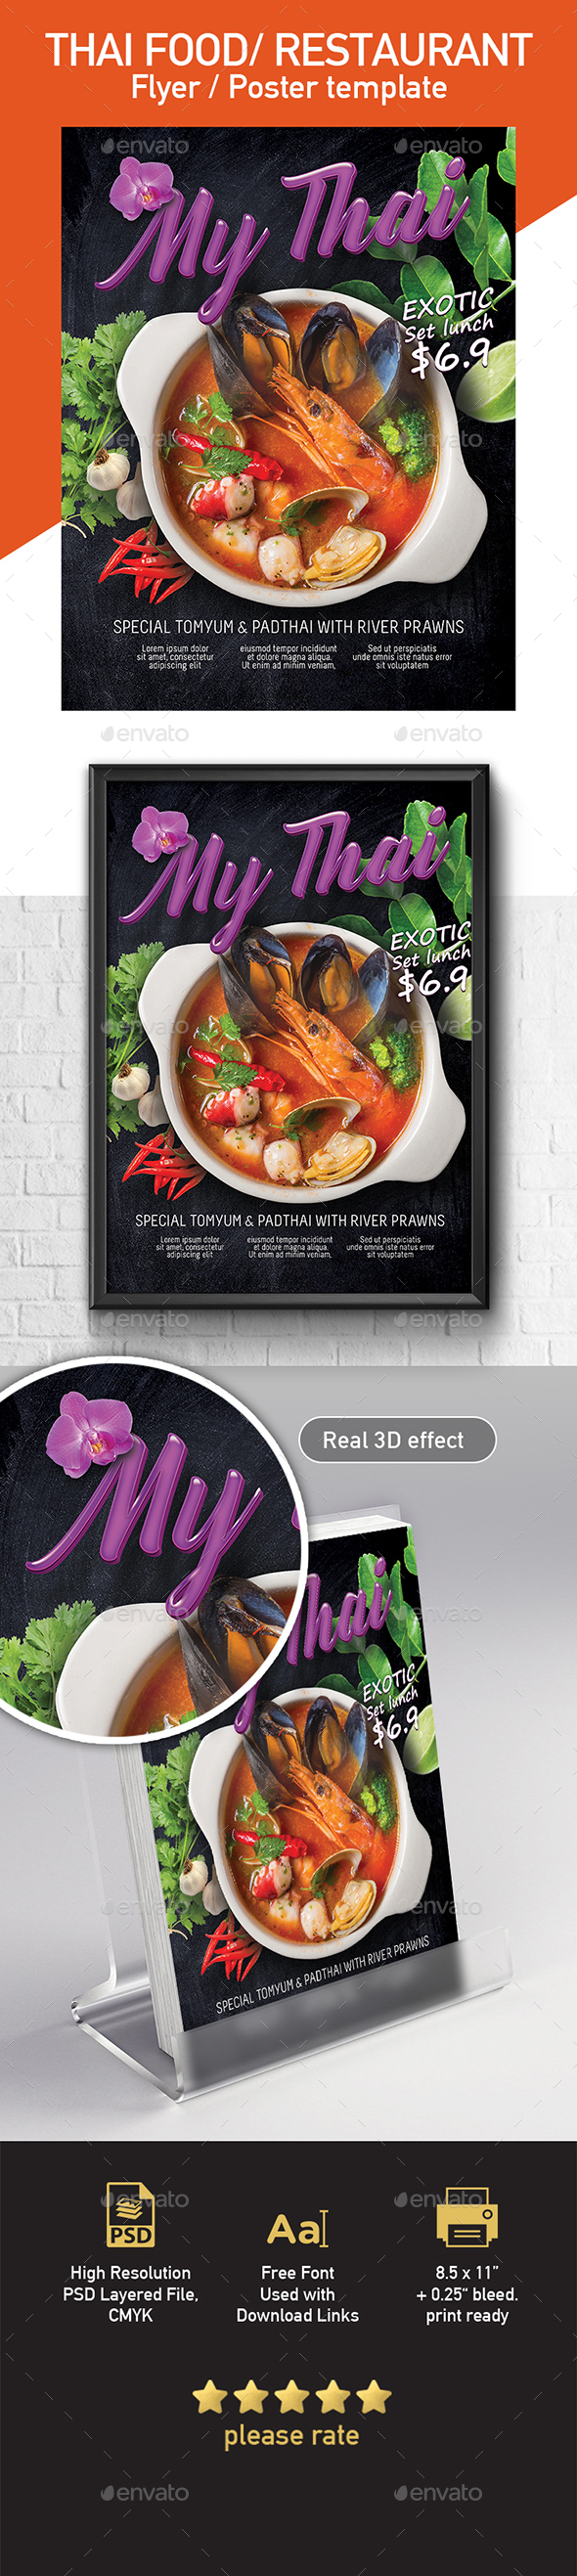 Thai Food Restaurant Poster / Flyer Template